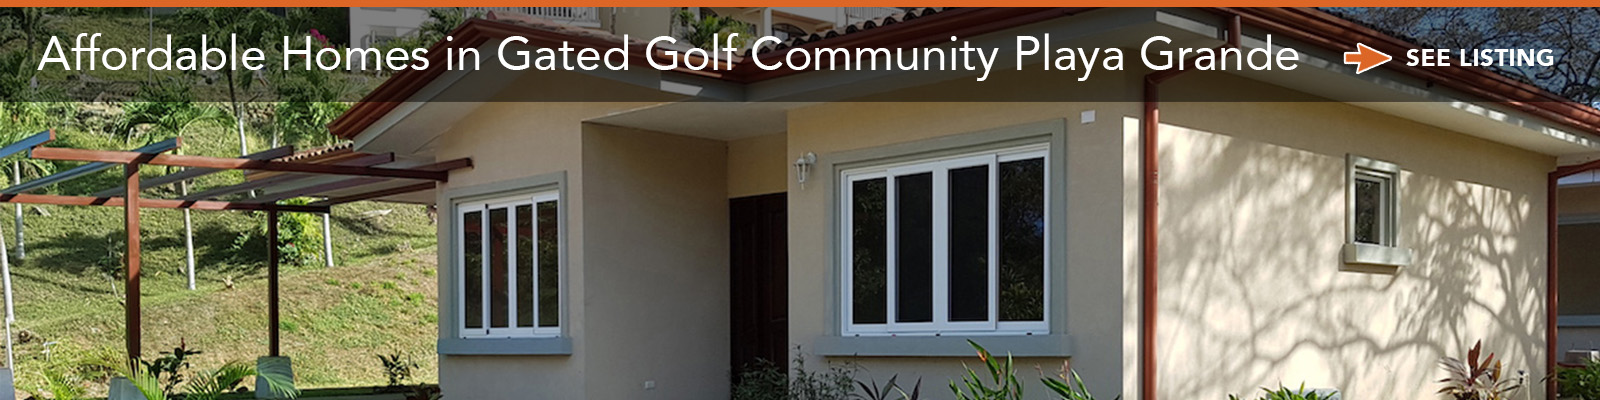 Affordable Homes in Gated Golf Community Playa Grande